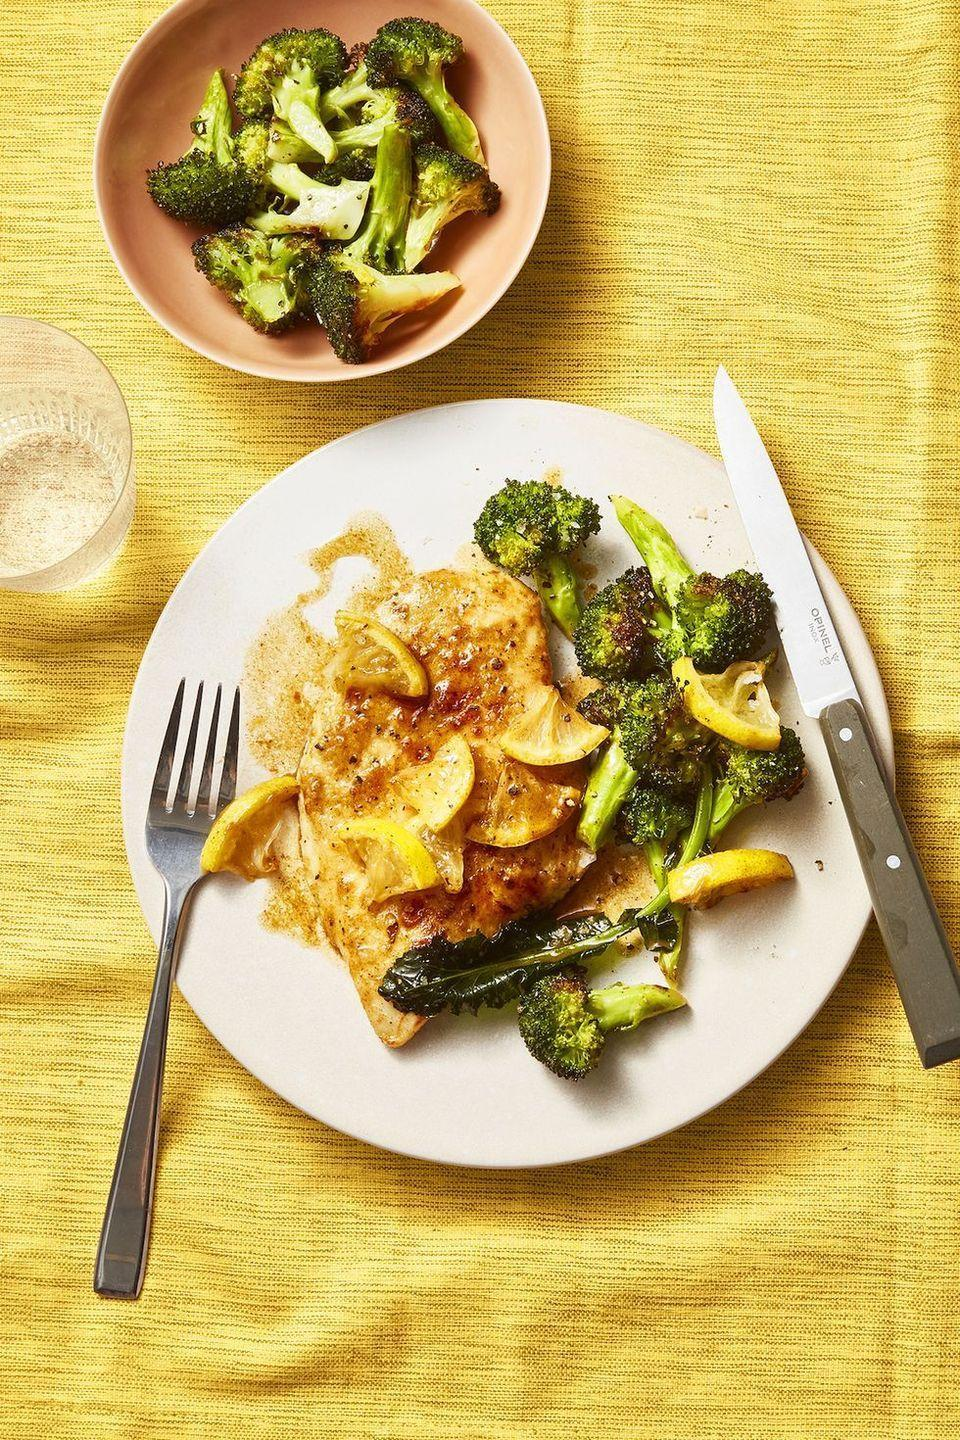 """<p>There's a good chance you already have all the ingredients you need for this <a href=""""https://www.goodhousekeeping.com/food-recipes/easy/g926/easy-fall-dinner-recipes/"""" rel=""""nofollow noopener"""" target=""""_blank"""" data-ylk=""""slk:easy weeknight dinner"""" class=""""link rapid-noclick-resp"""">easy weeknight dinner</a>.</p><p><em><a href=""""https://www.goodhousekeeping.com/food-recipes/healthy/a28650977/pan-fried-chicken-roasted-broccoli-recipe/"""" rel=""""nofollow noopener"""" target=""""_blank"""" data-ylk=""""slk:Get the recipe for Pan-Fried Chicken with Lemony Roasted Broccoli »"""" class=""""link rapid-noclick-resp"""">Get the recipe for Pan-Fried Chicken with Lemony Roasted Broccoli »</a></em></p>"""